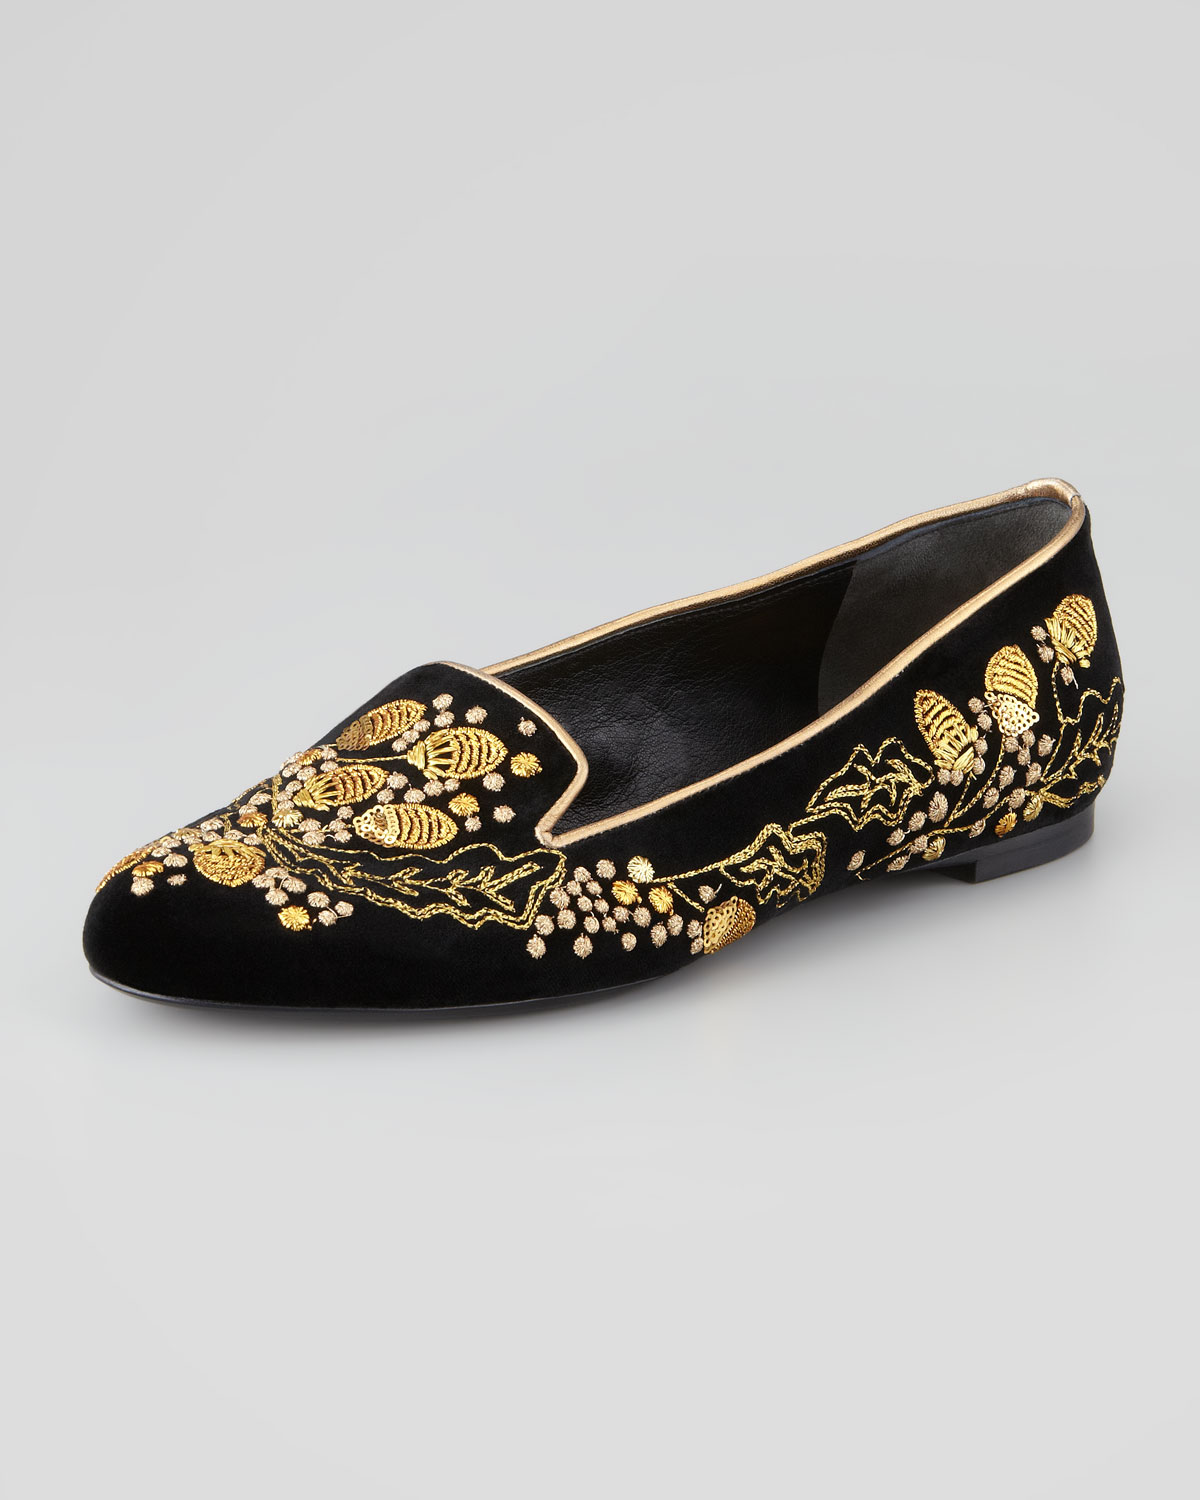 Black And Gold Slipper Shoes